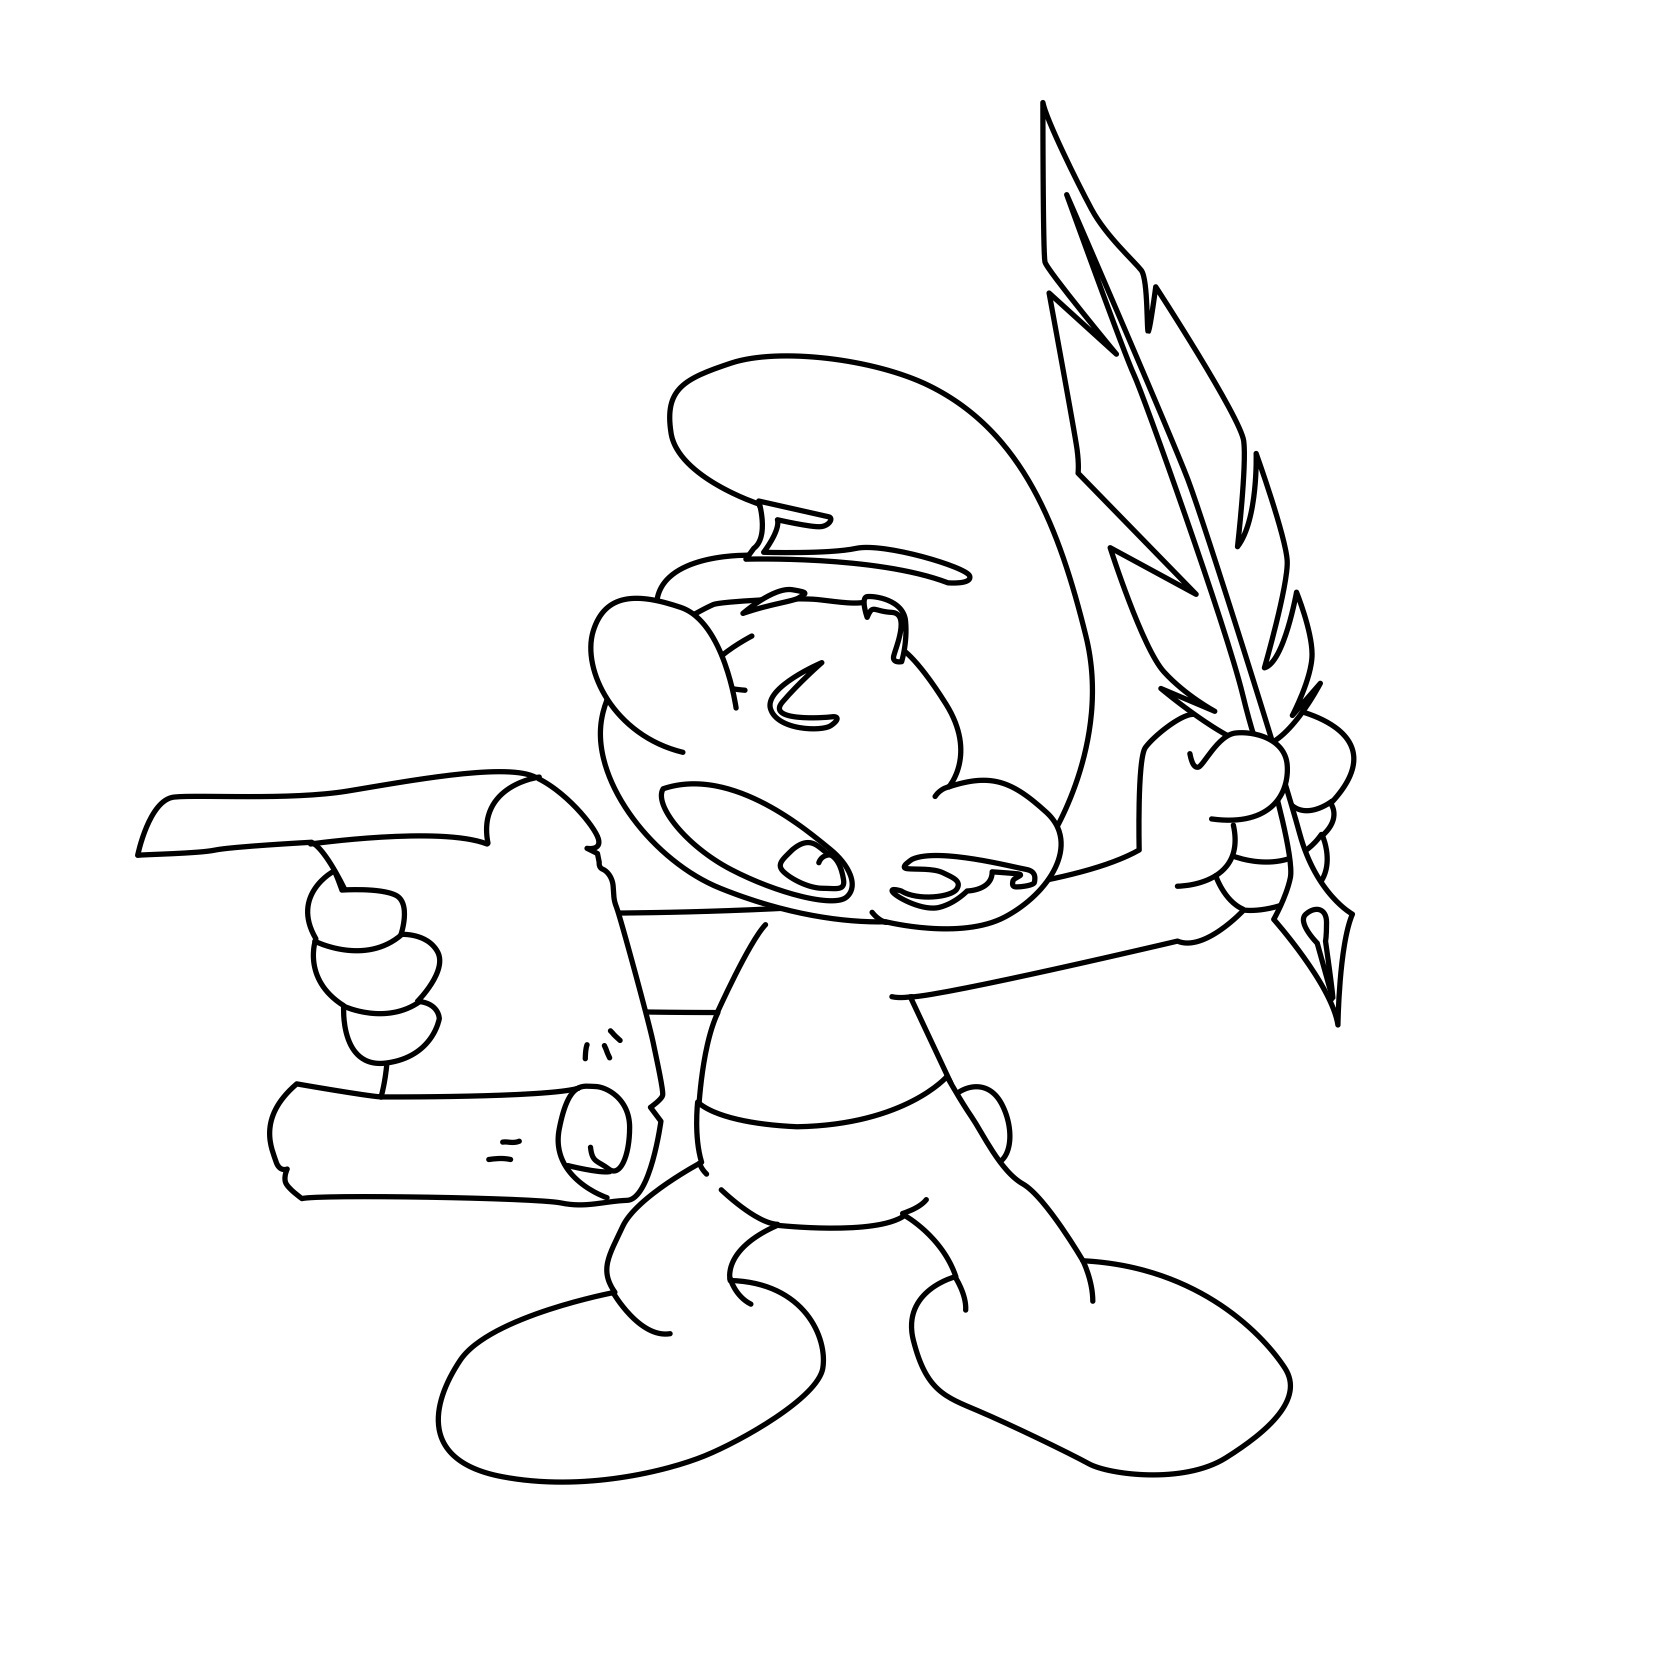 smurf printable coloring pages - photo#24